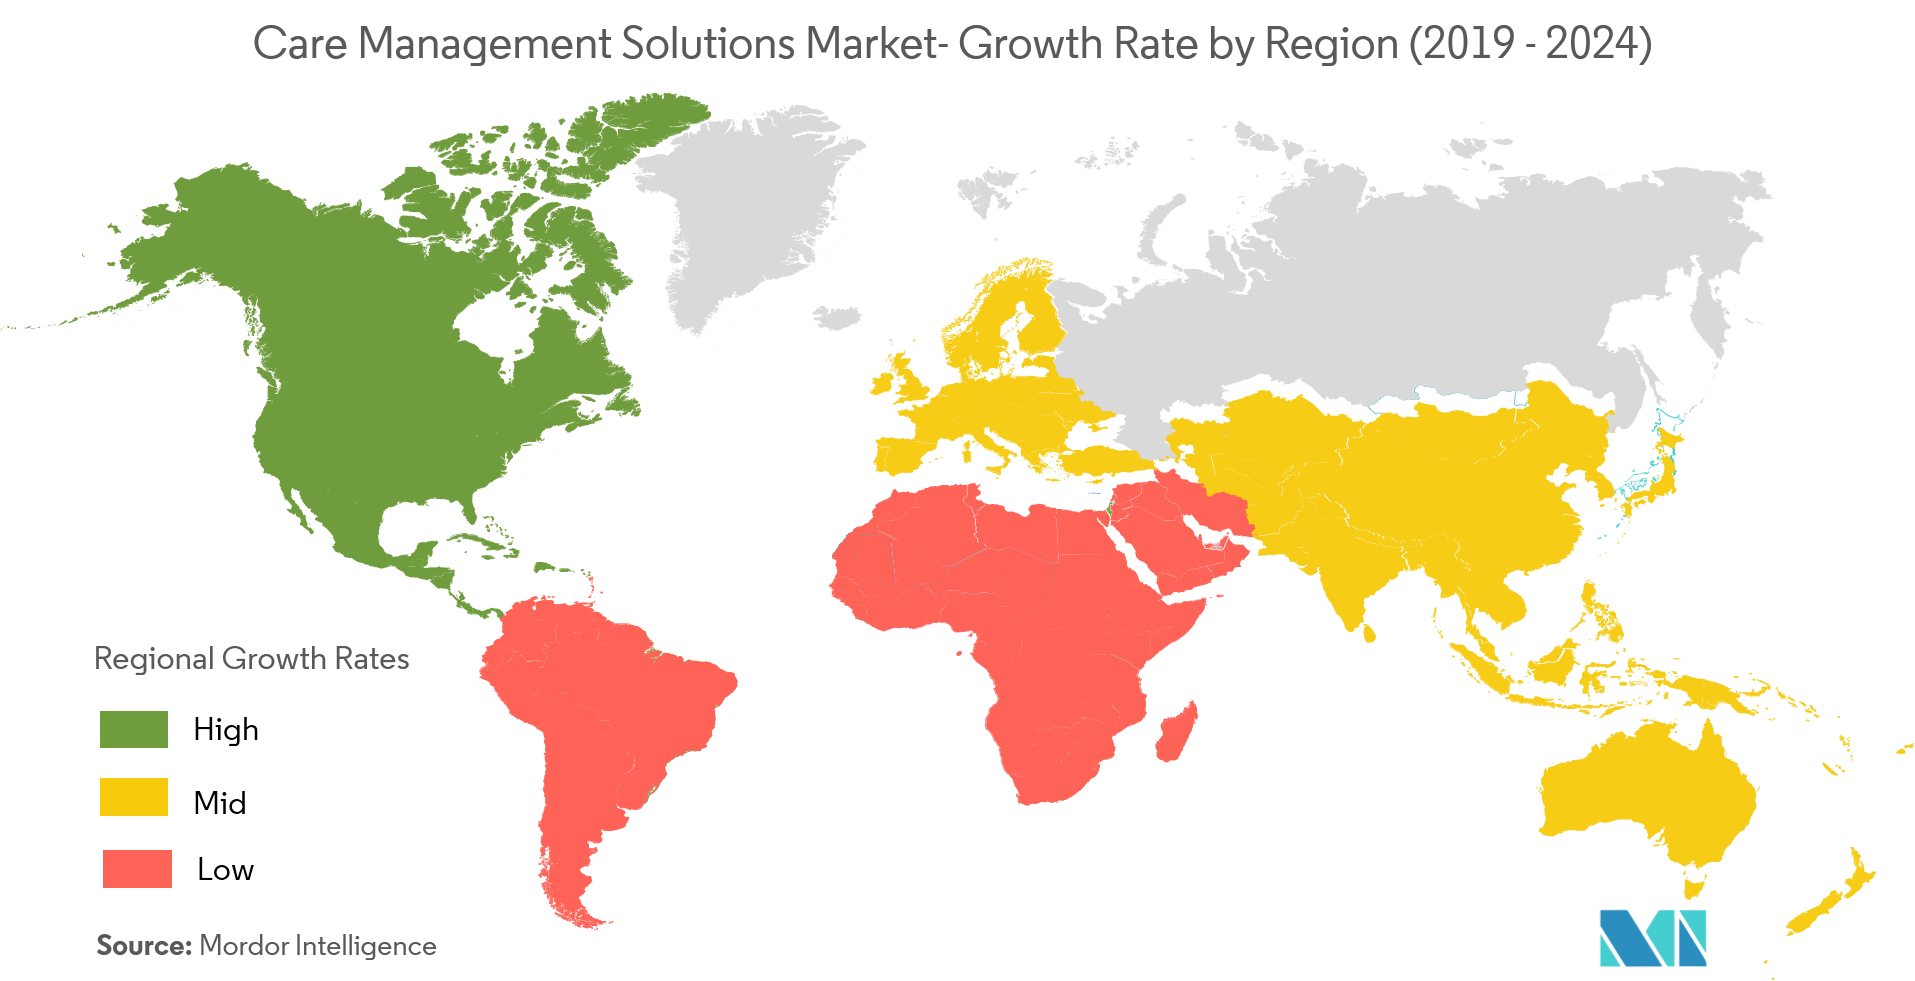 Care Management Solutions Market_image 3